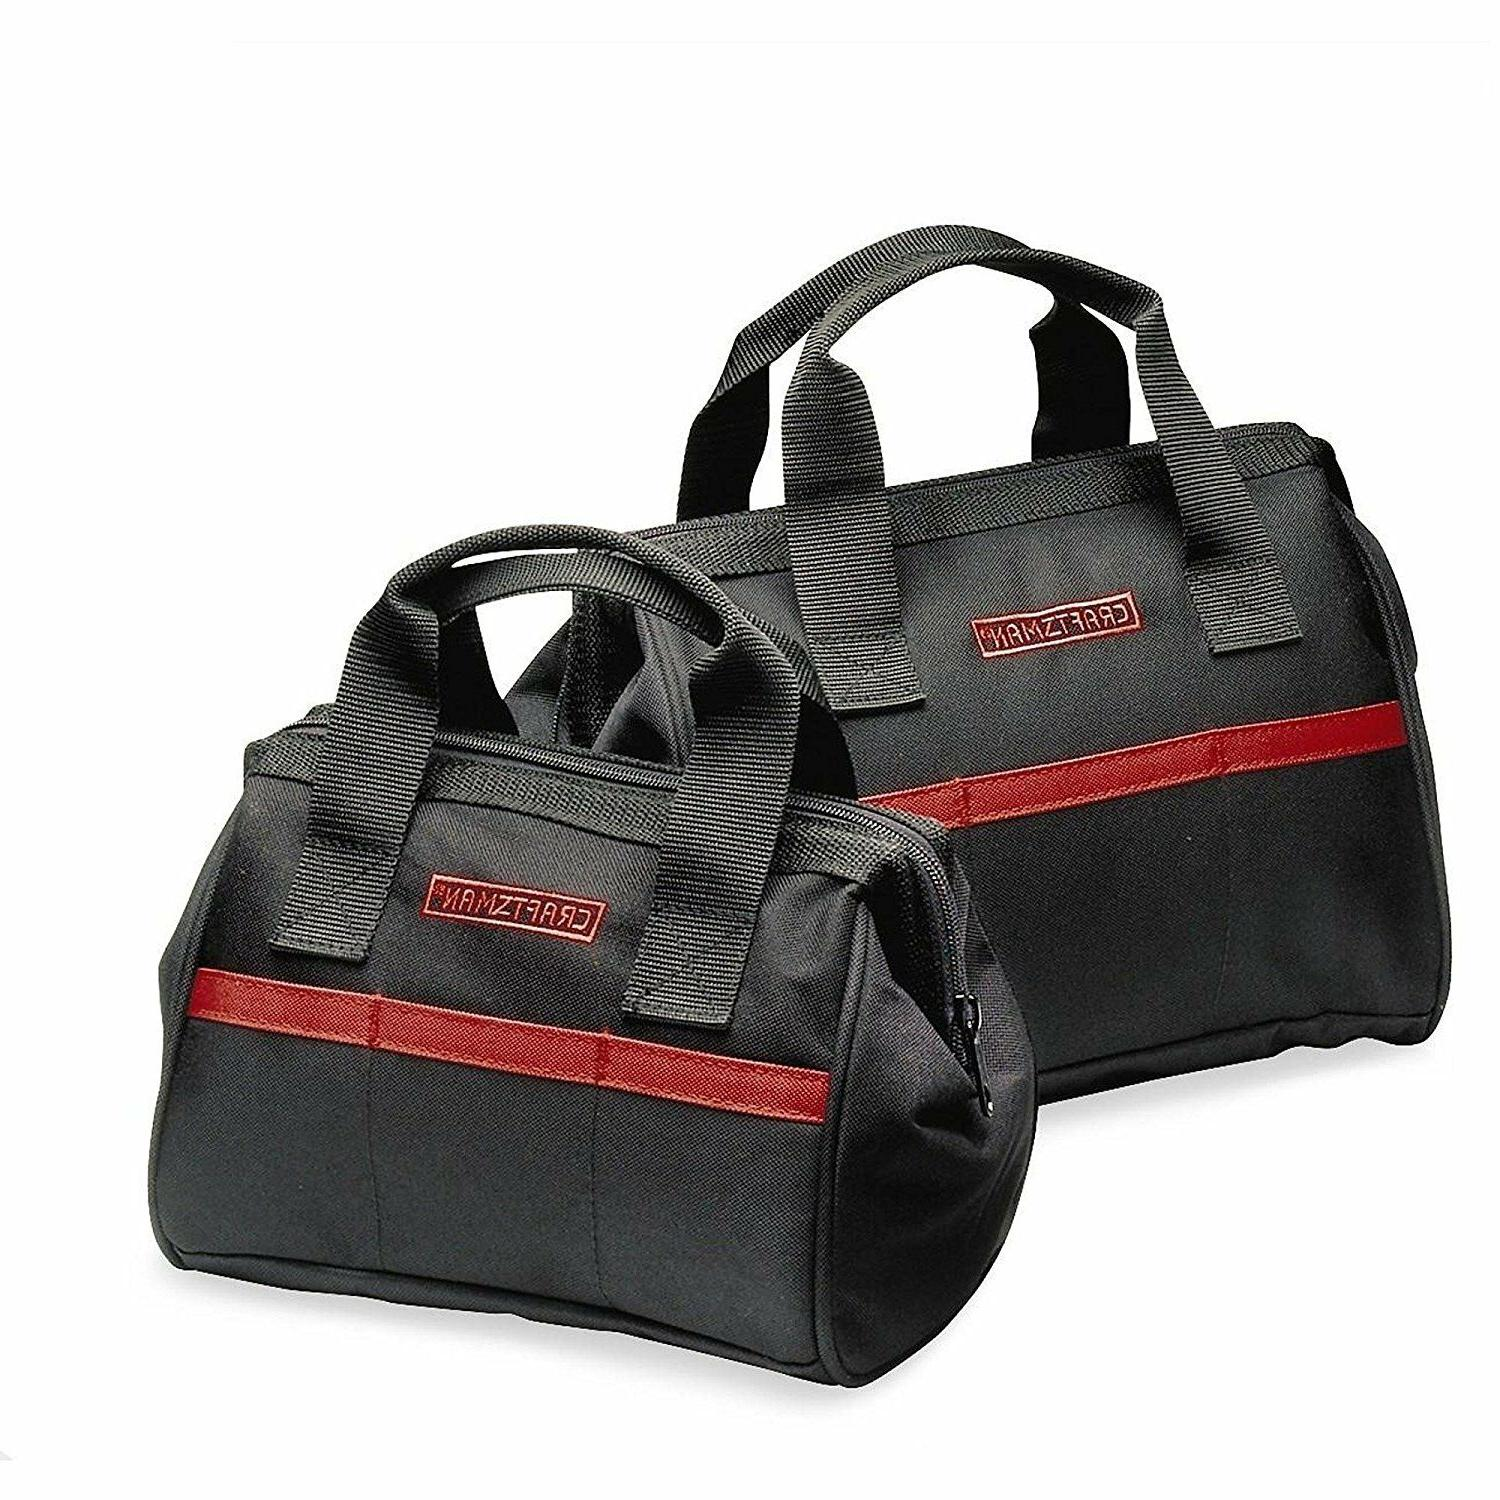 Craftsman 2-PC Bag Set 940558 2 bags one 10 inches and one inches